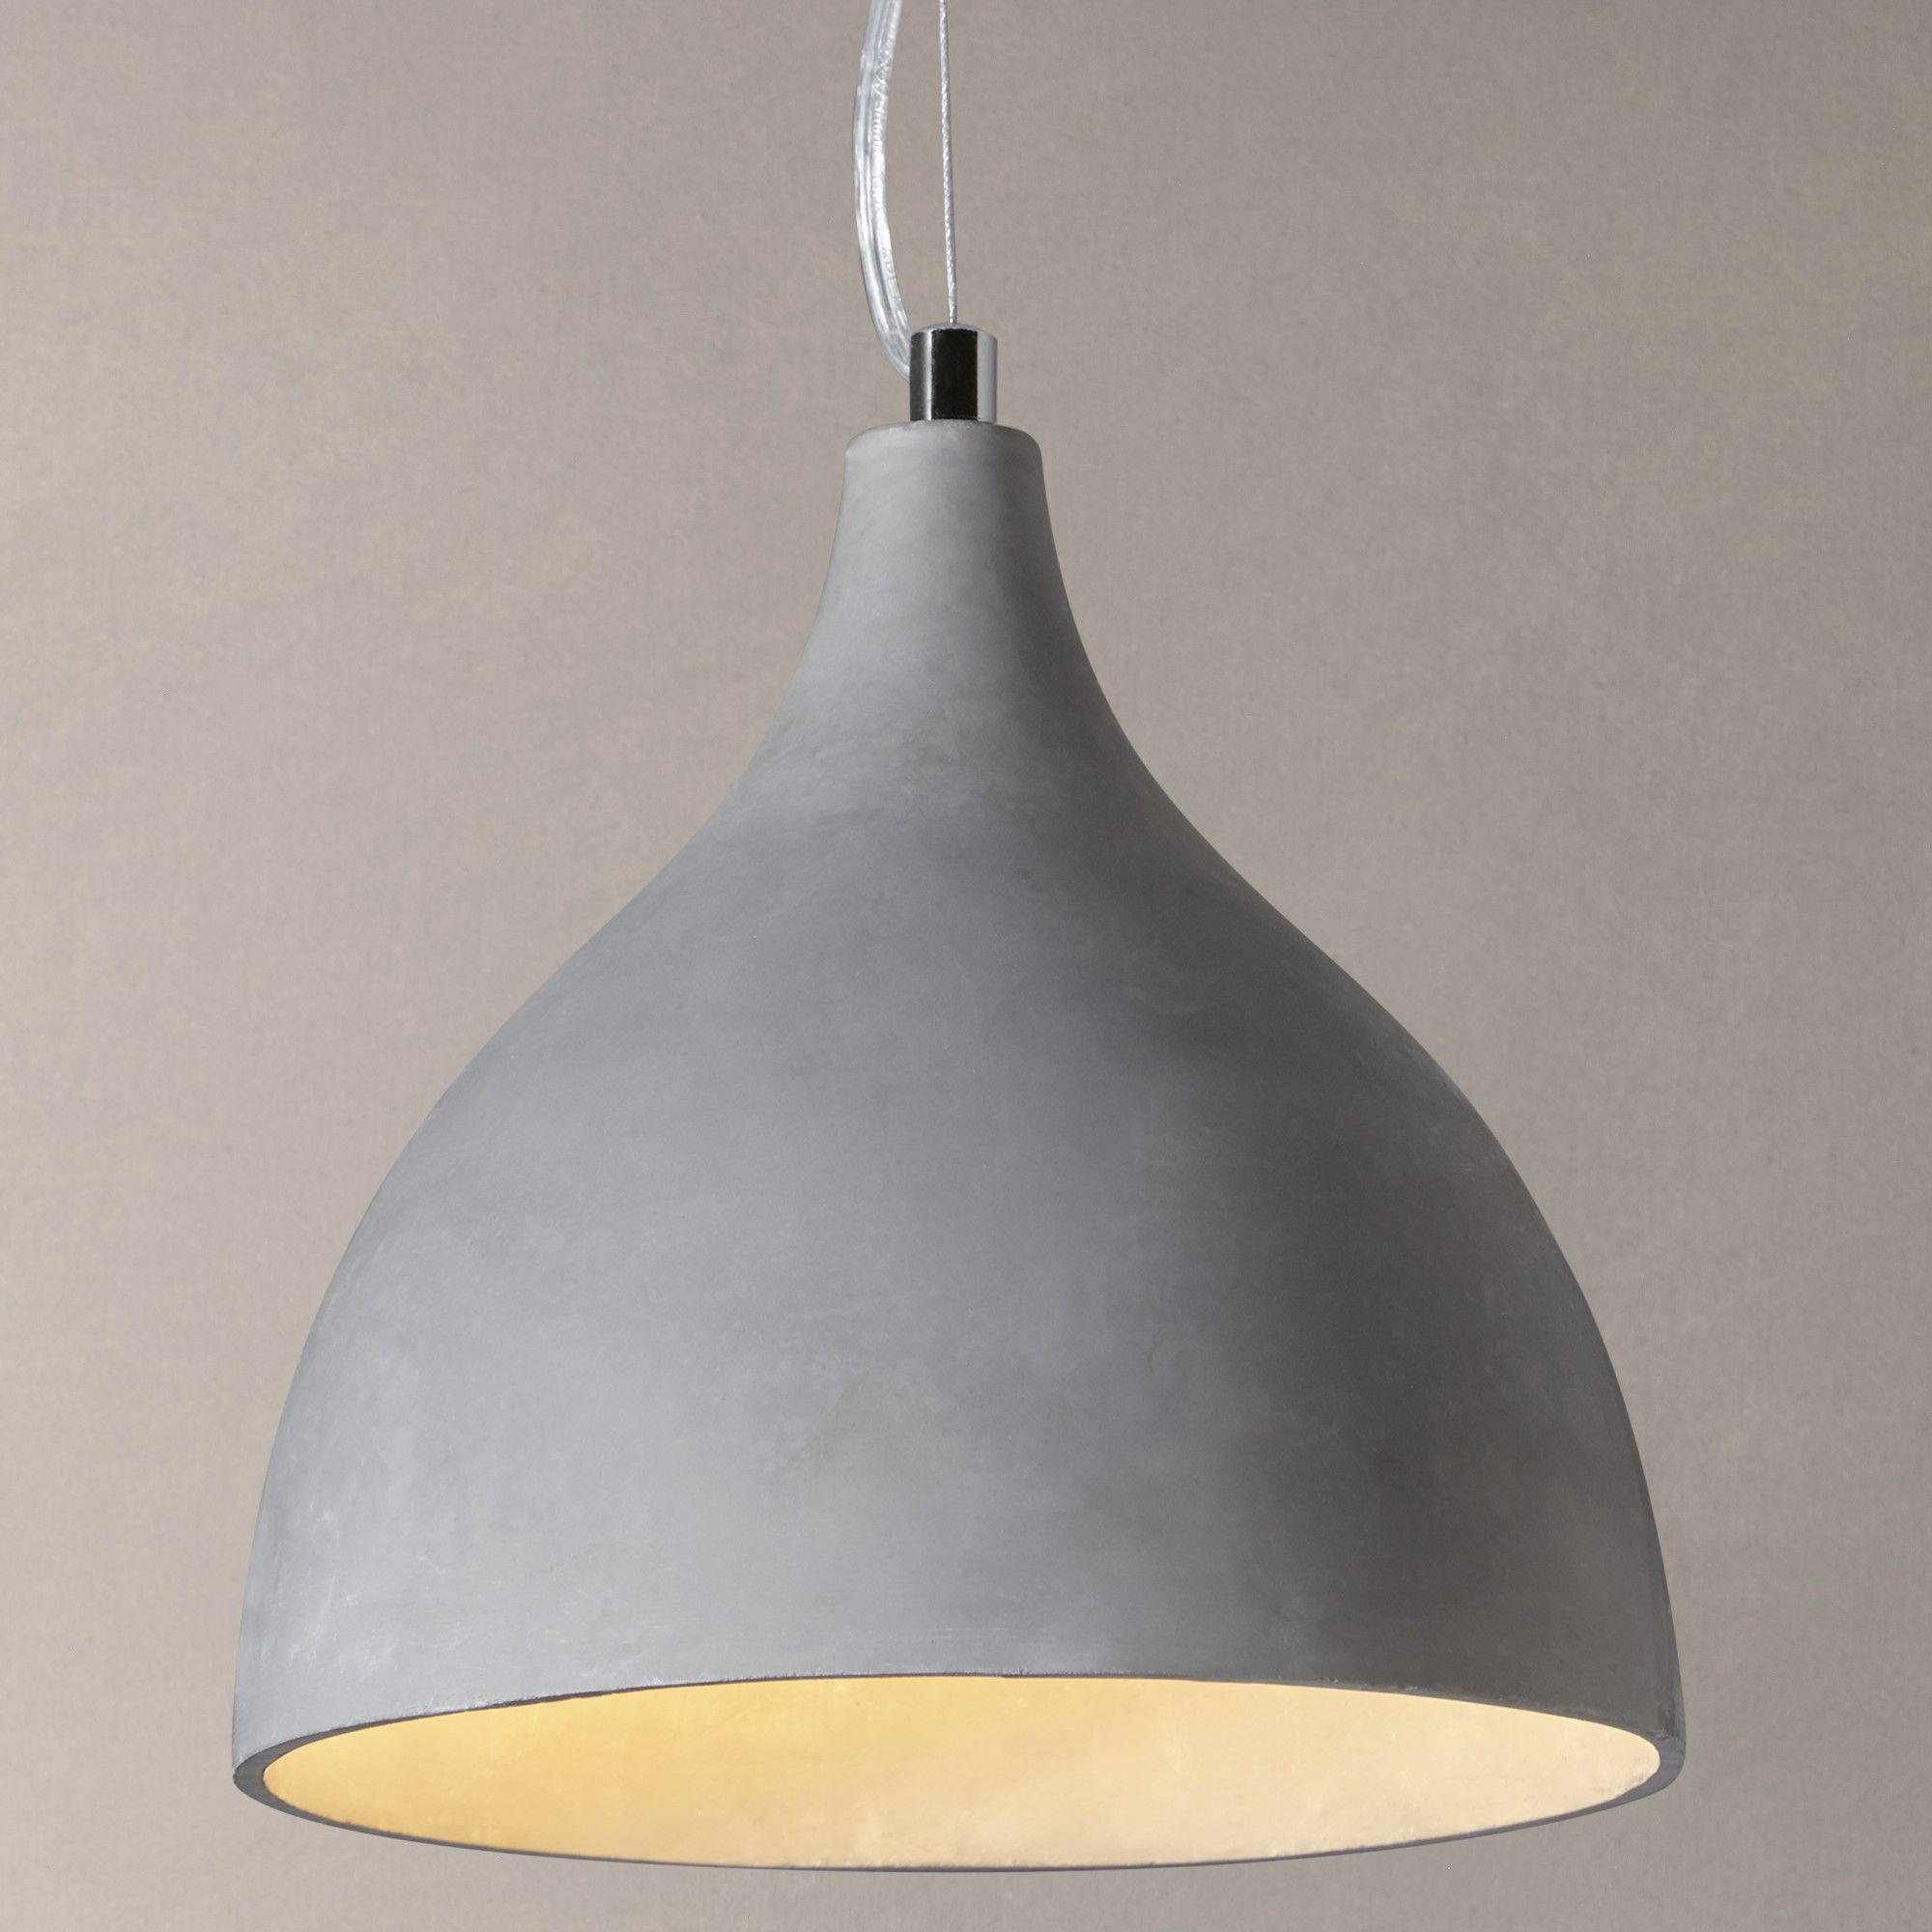 concrete products pendant ansicht muse light long folly